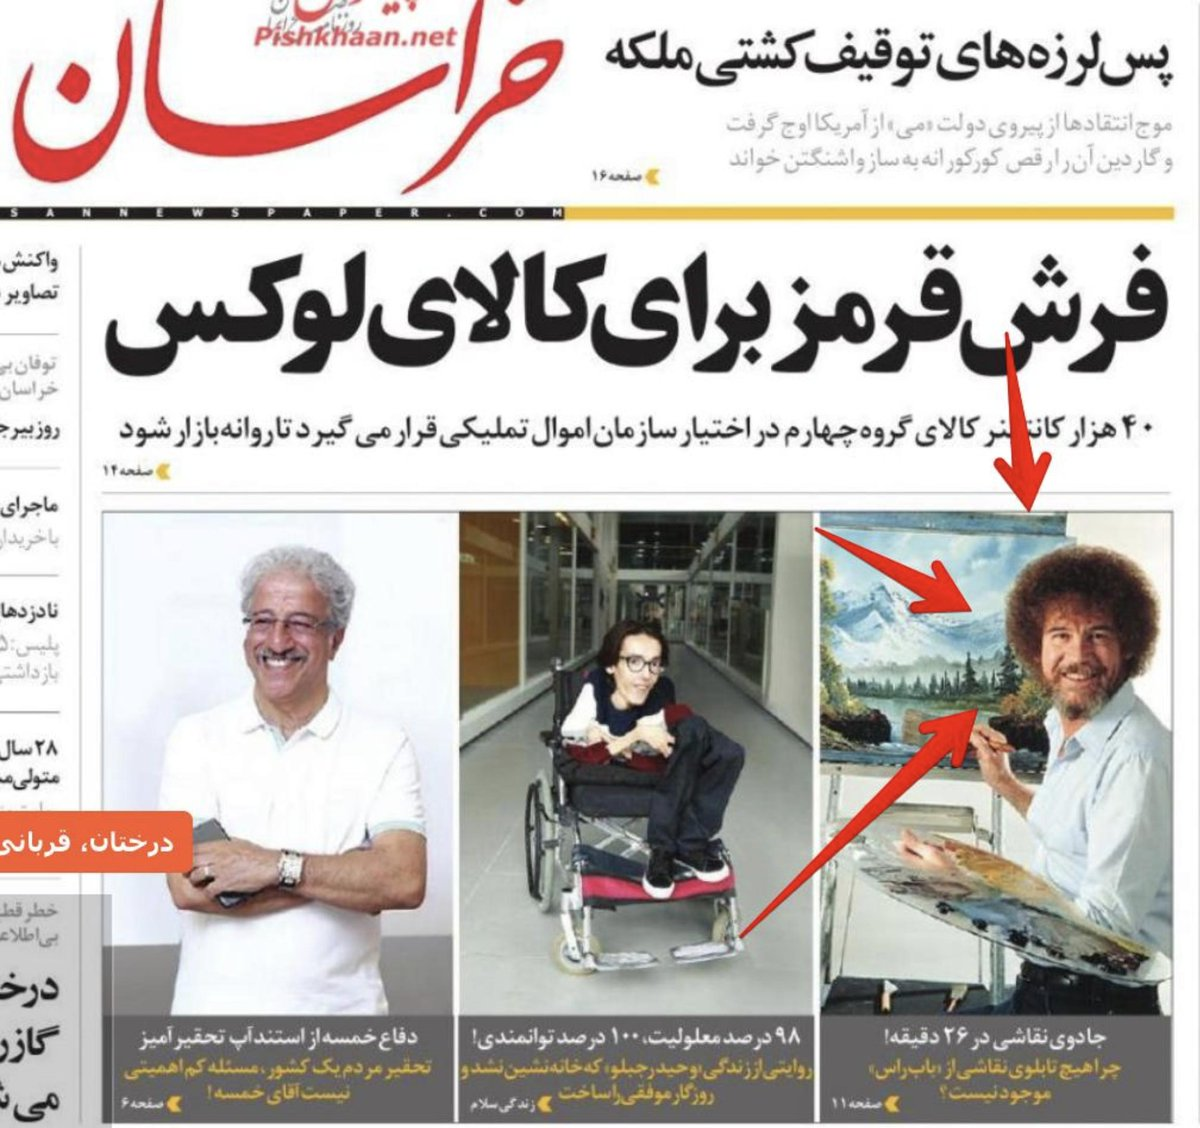 #TIL via @rezahakbari that Bob Ross is big in Iran. The @nytvideo piece on Bob Ross, edited by Emily Rhyne, was front page on Iran's Khorason Daily   You can watch the magical Bob Ross video here: https://www.nytimes.com/video/arts/100000005865824/bob-ross-paintings-mystery.html…